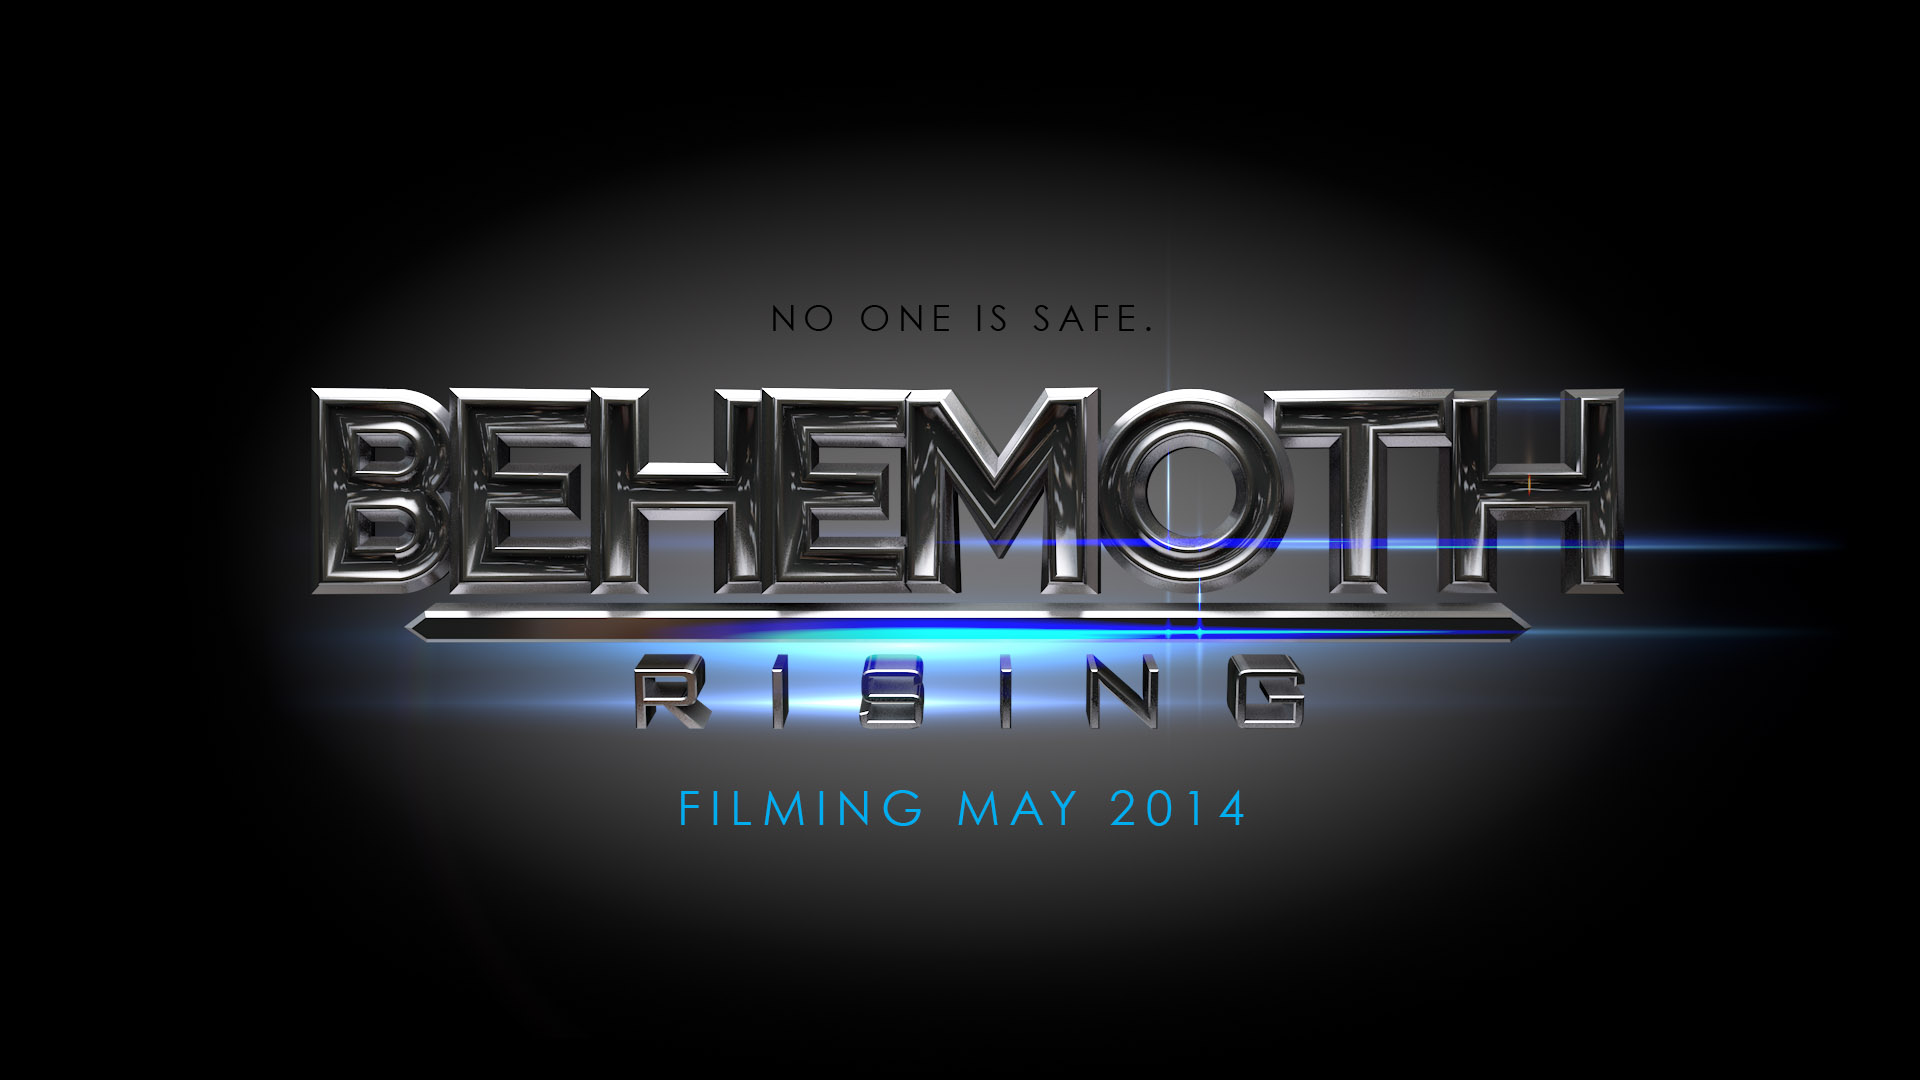 Behemoth Rising